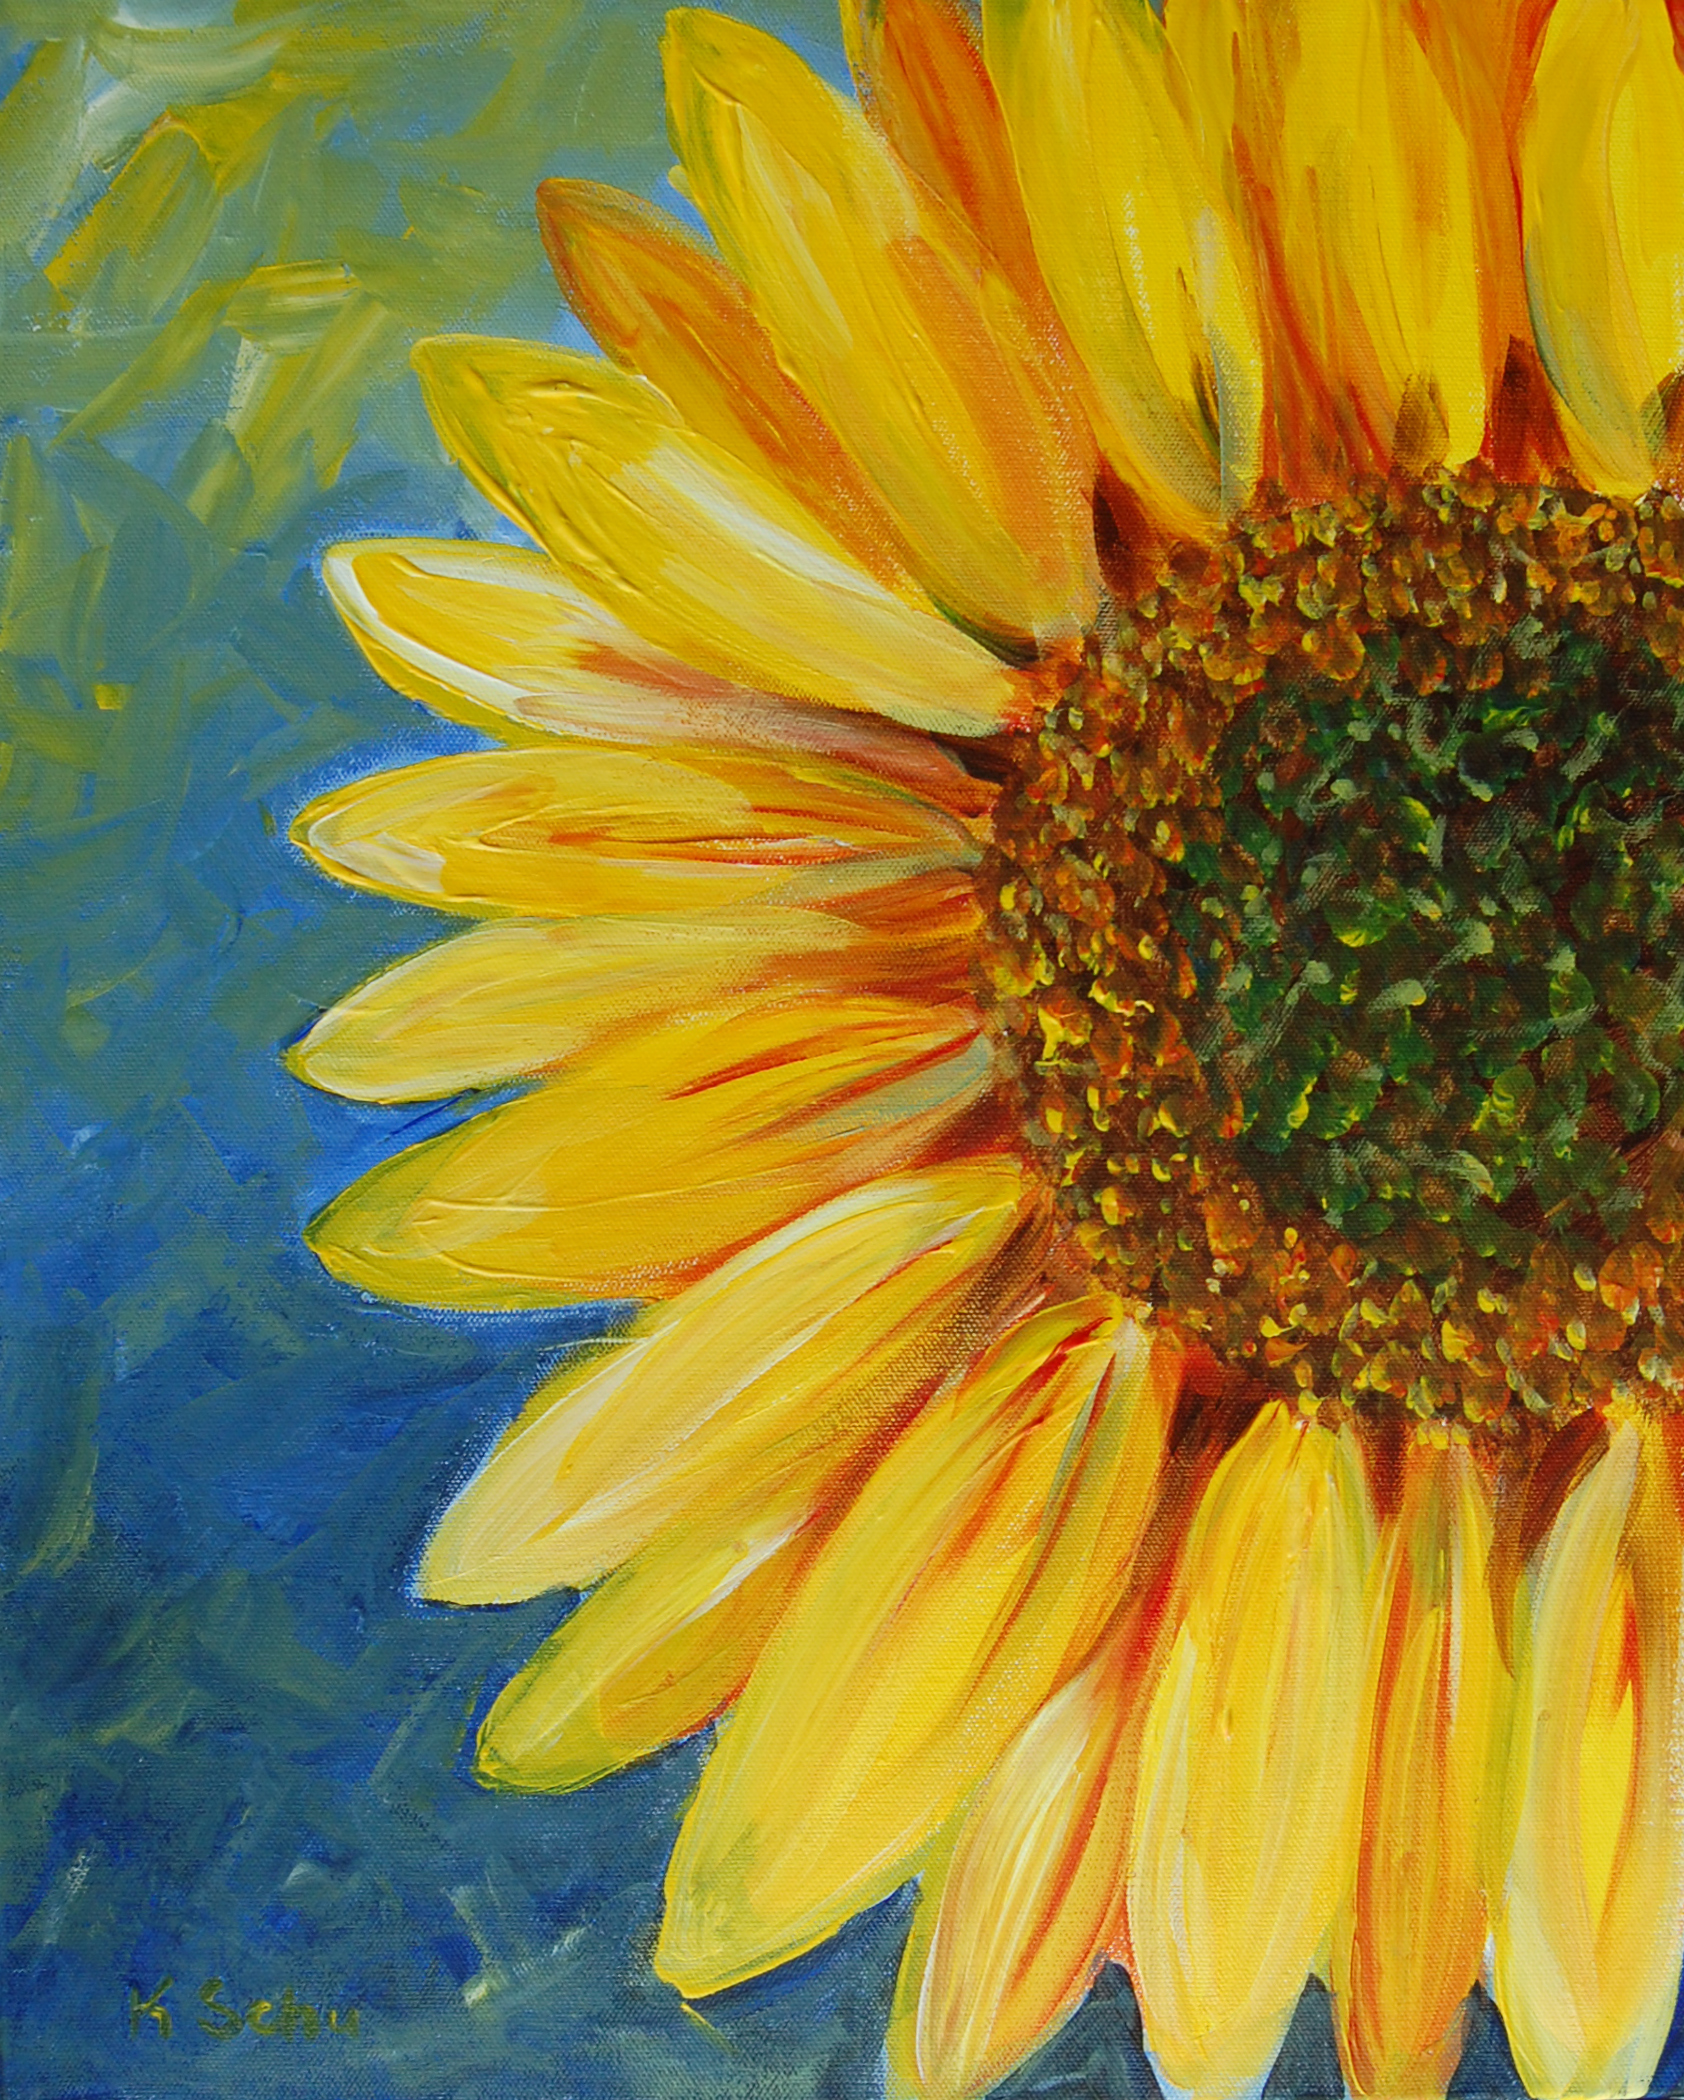 Sunflower Painting Party Tuesday 29 Mar 6 30 Pm In Niceville